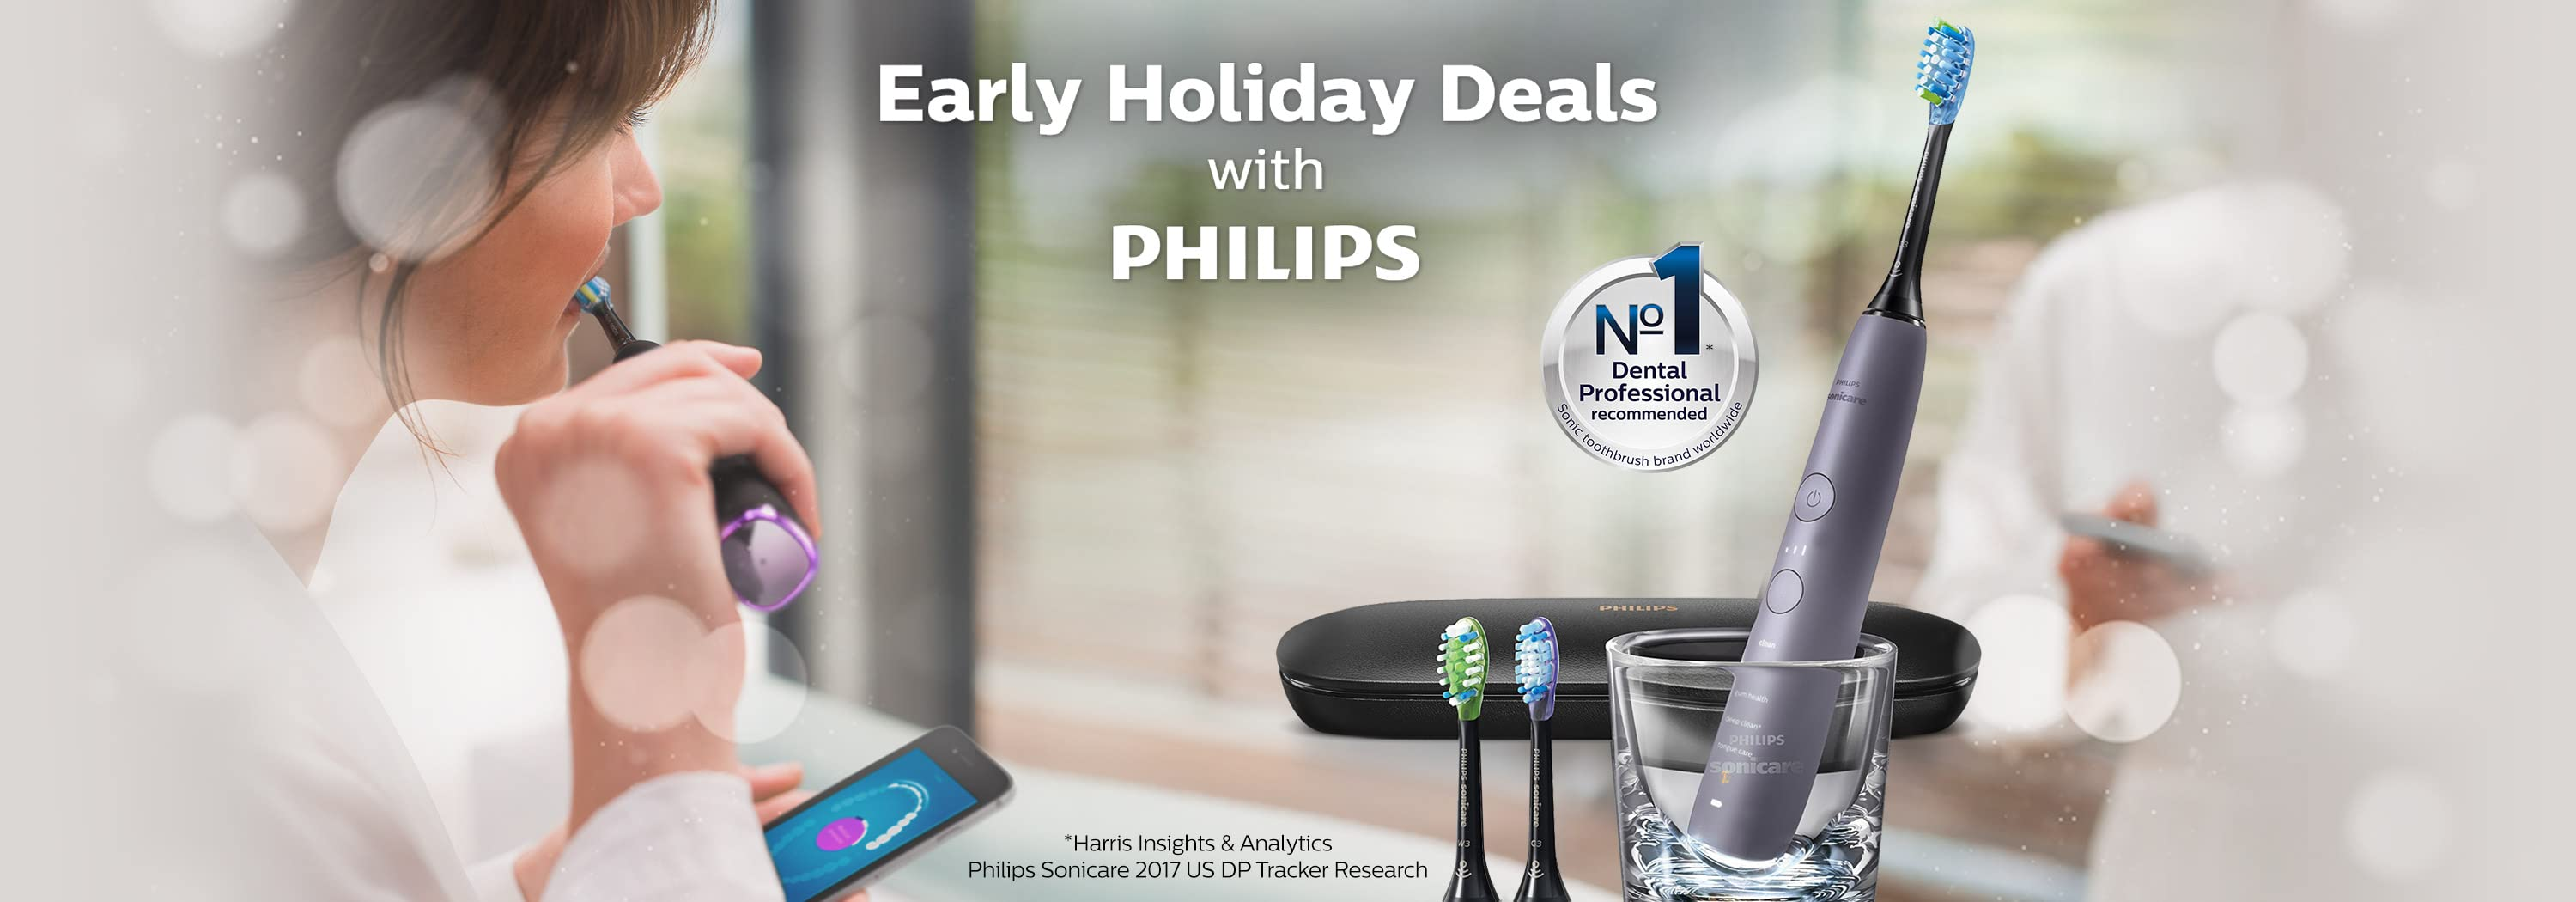 Early Holiday Deals with Philips